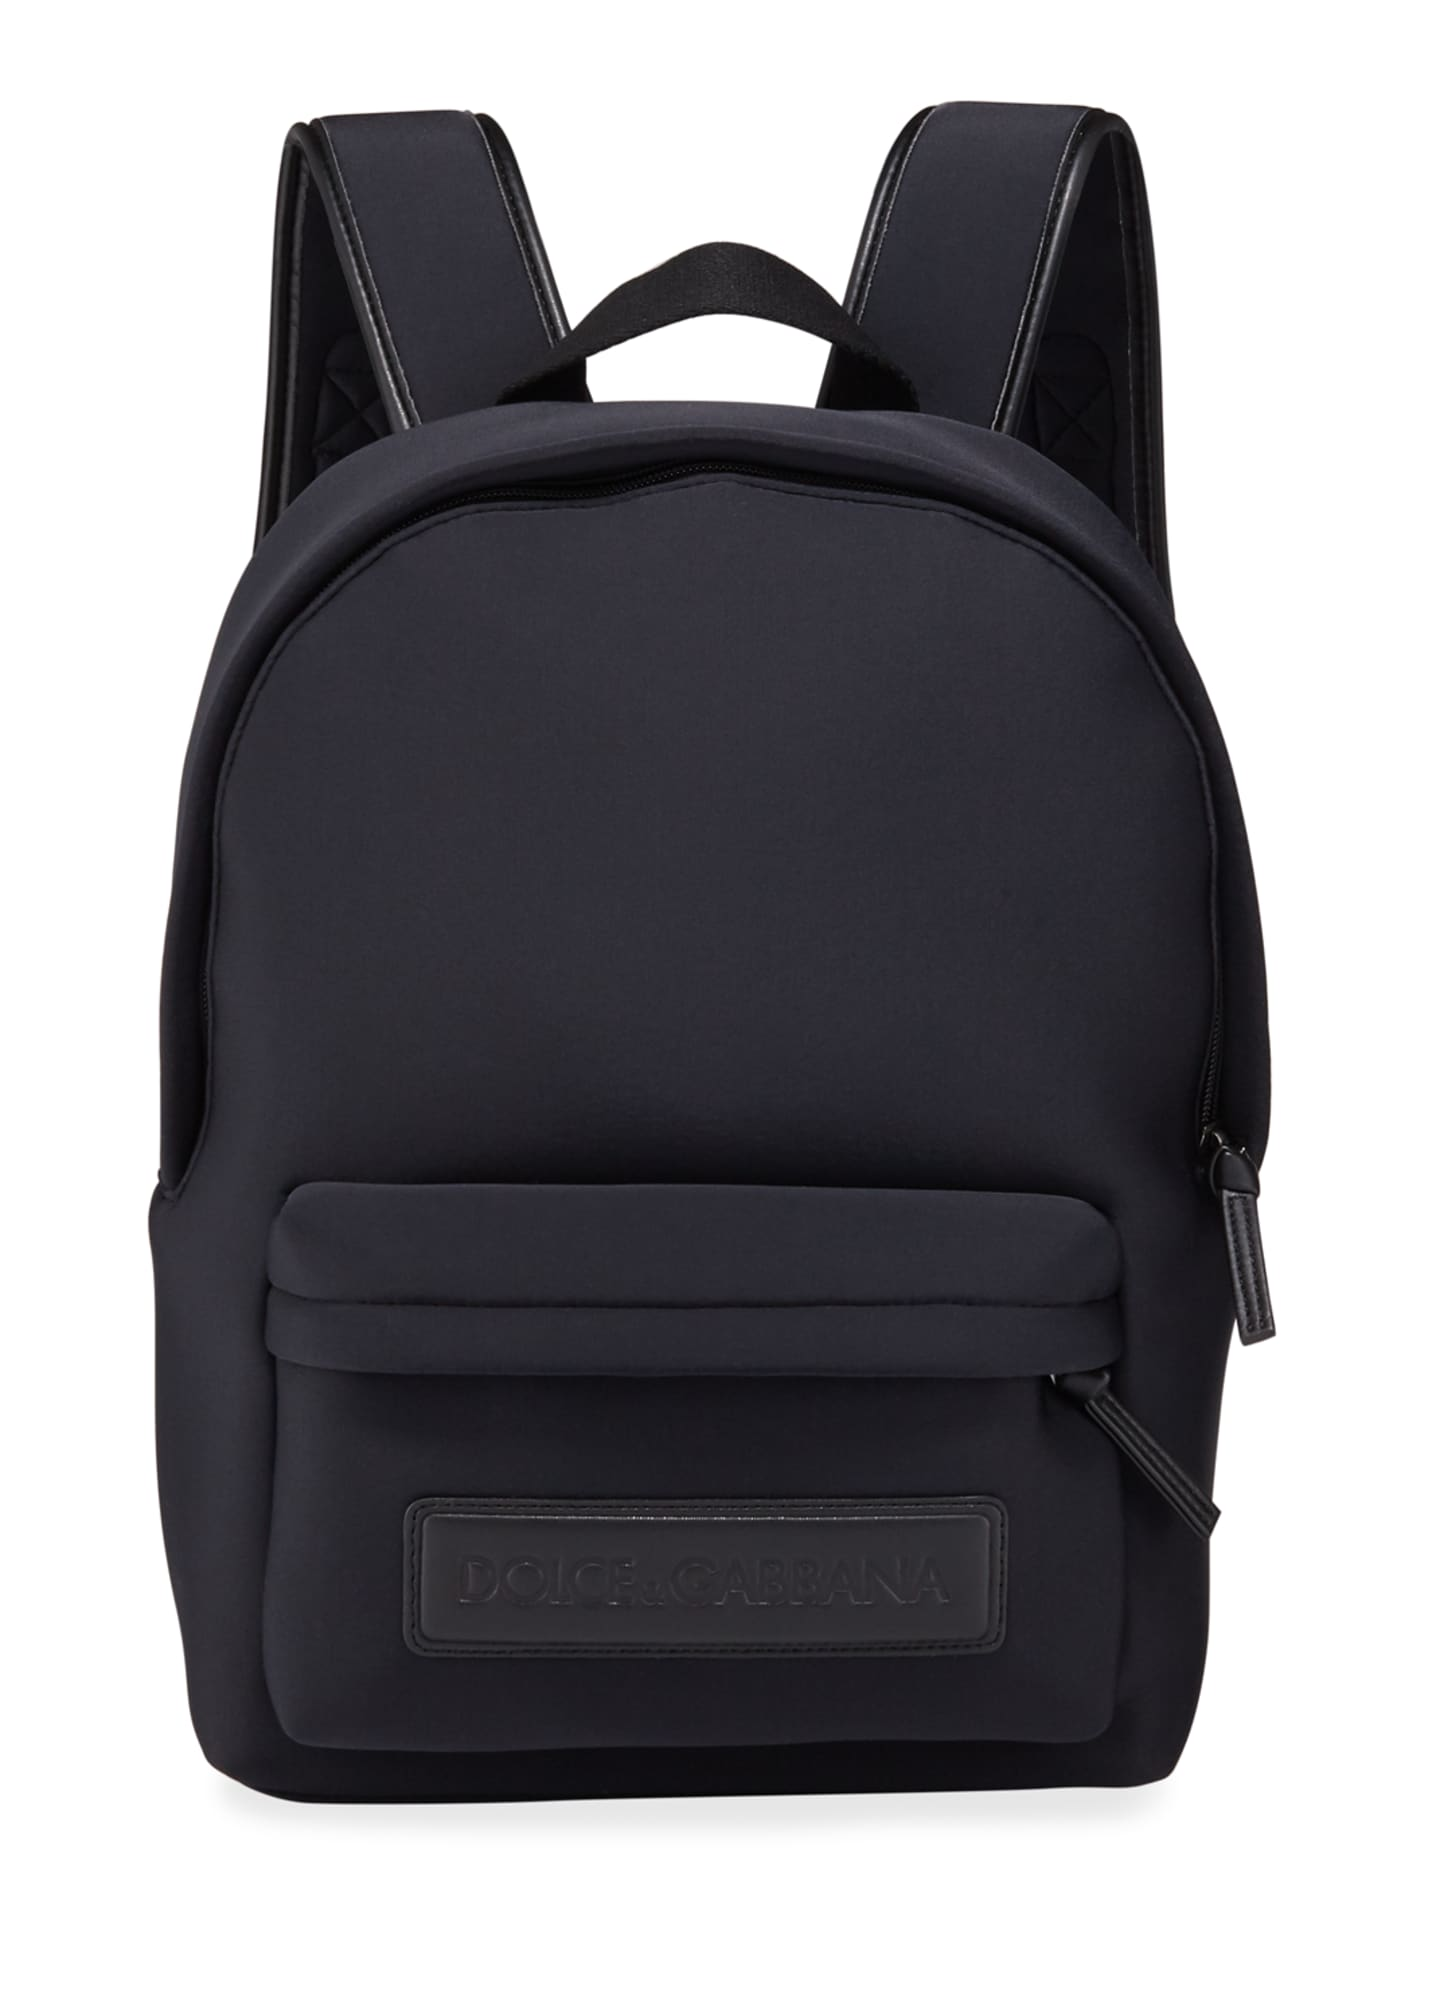 Dolce & Gabbana Kid's Neoprene Backpack w/ Leather